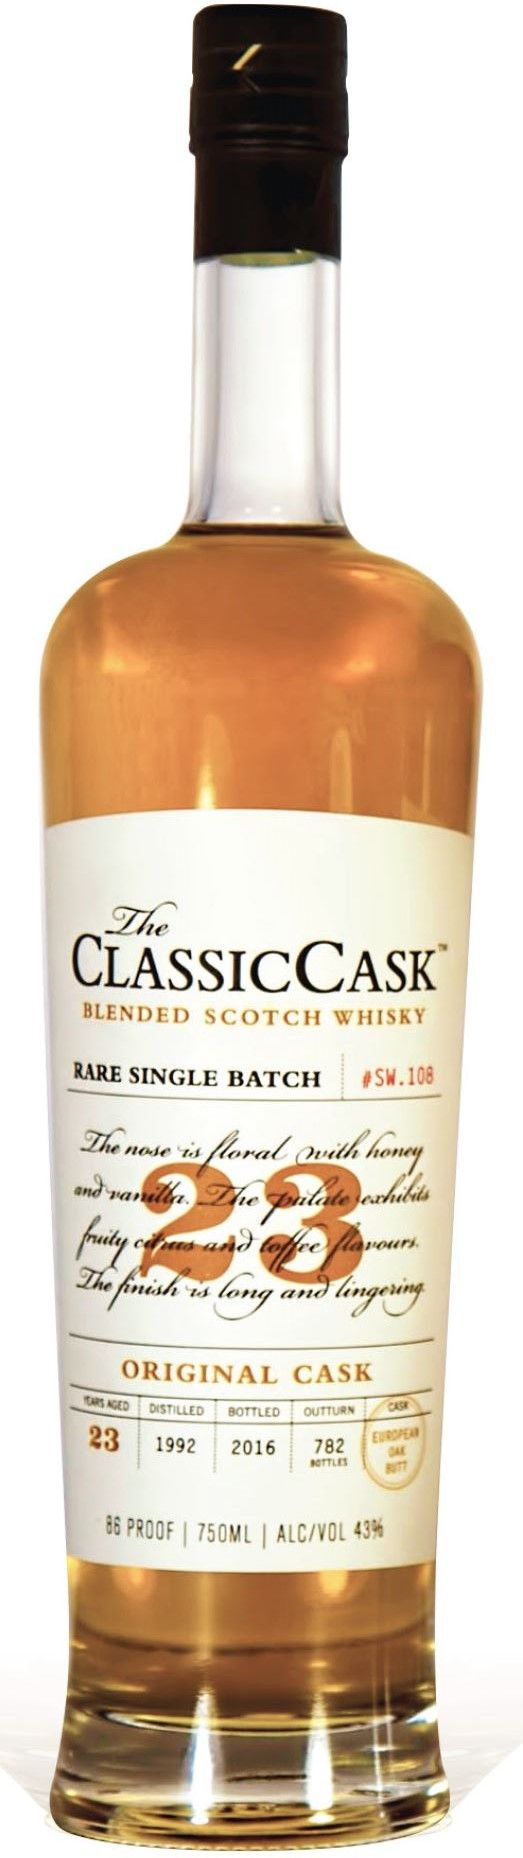 Classic Cask 23 Yr Original Cask Single Malt Scotch